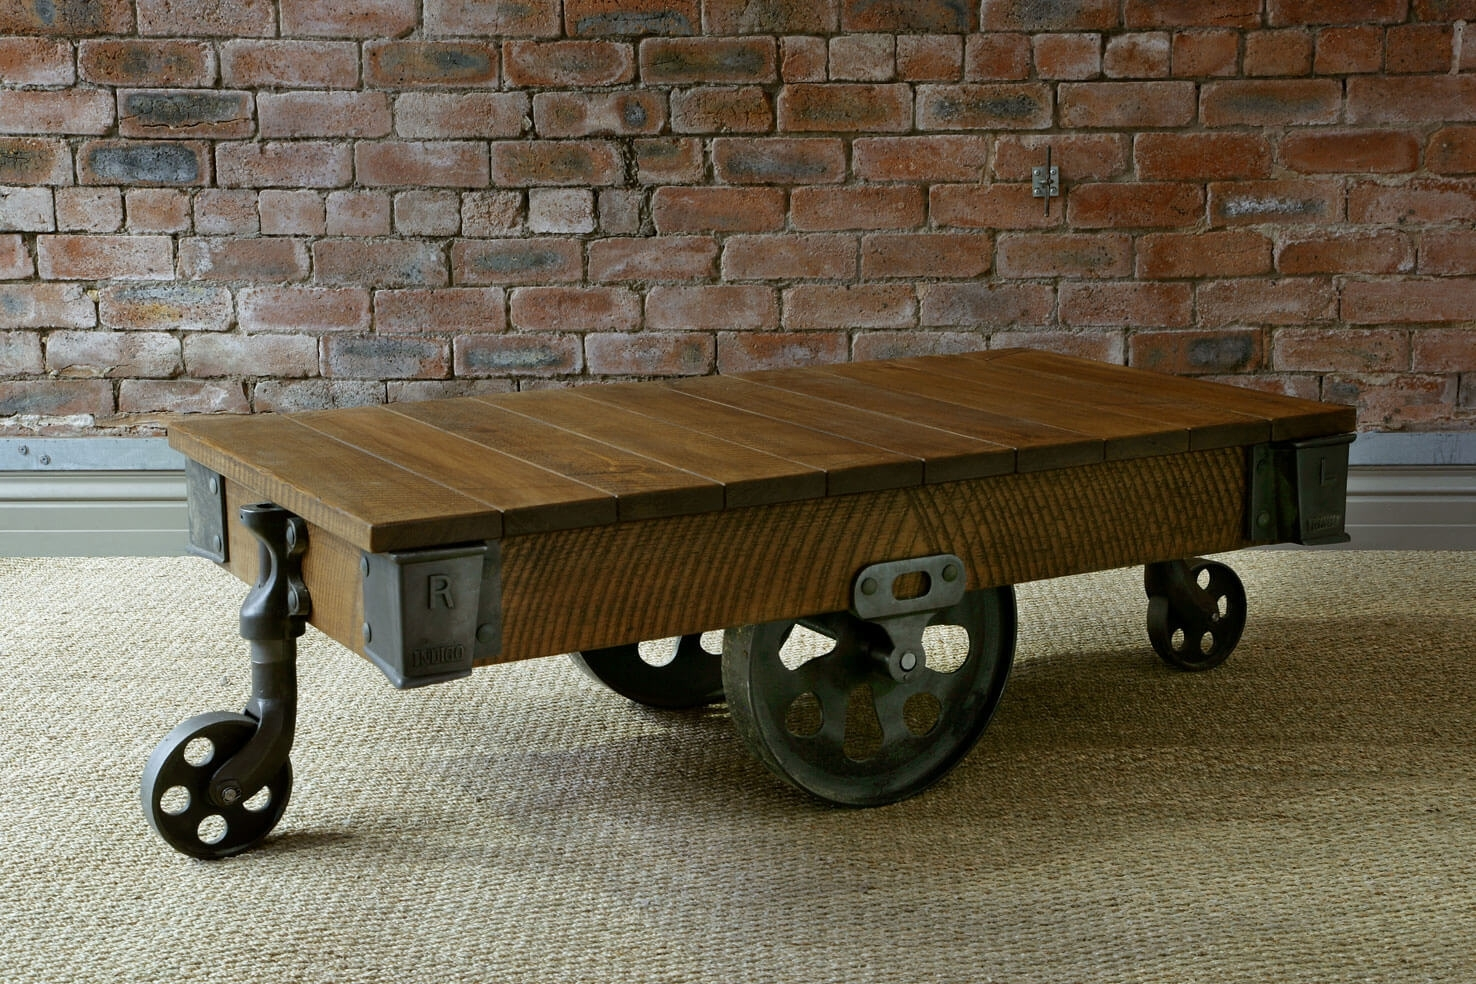 Rustic Wood Coffee Tables Handmade From Solid Oak Planks | Indigo throughout Mill Large Coffee Tables (Image 24 of 30)